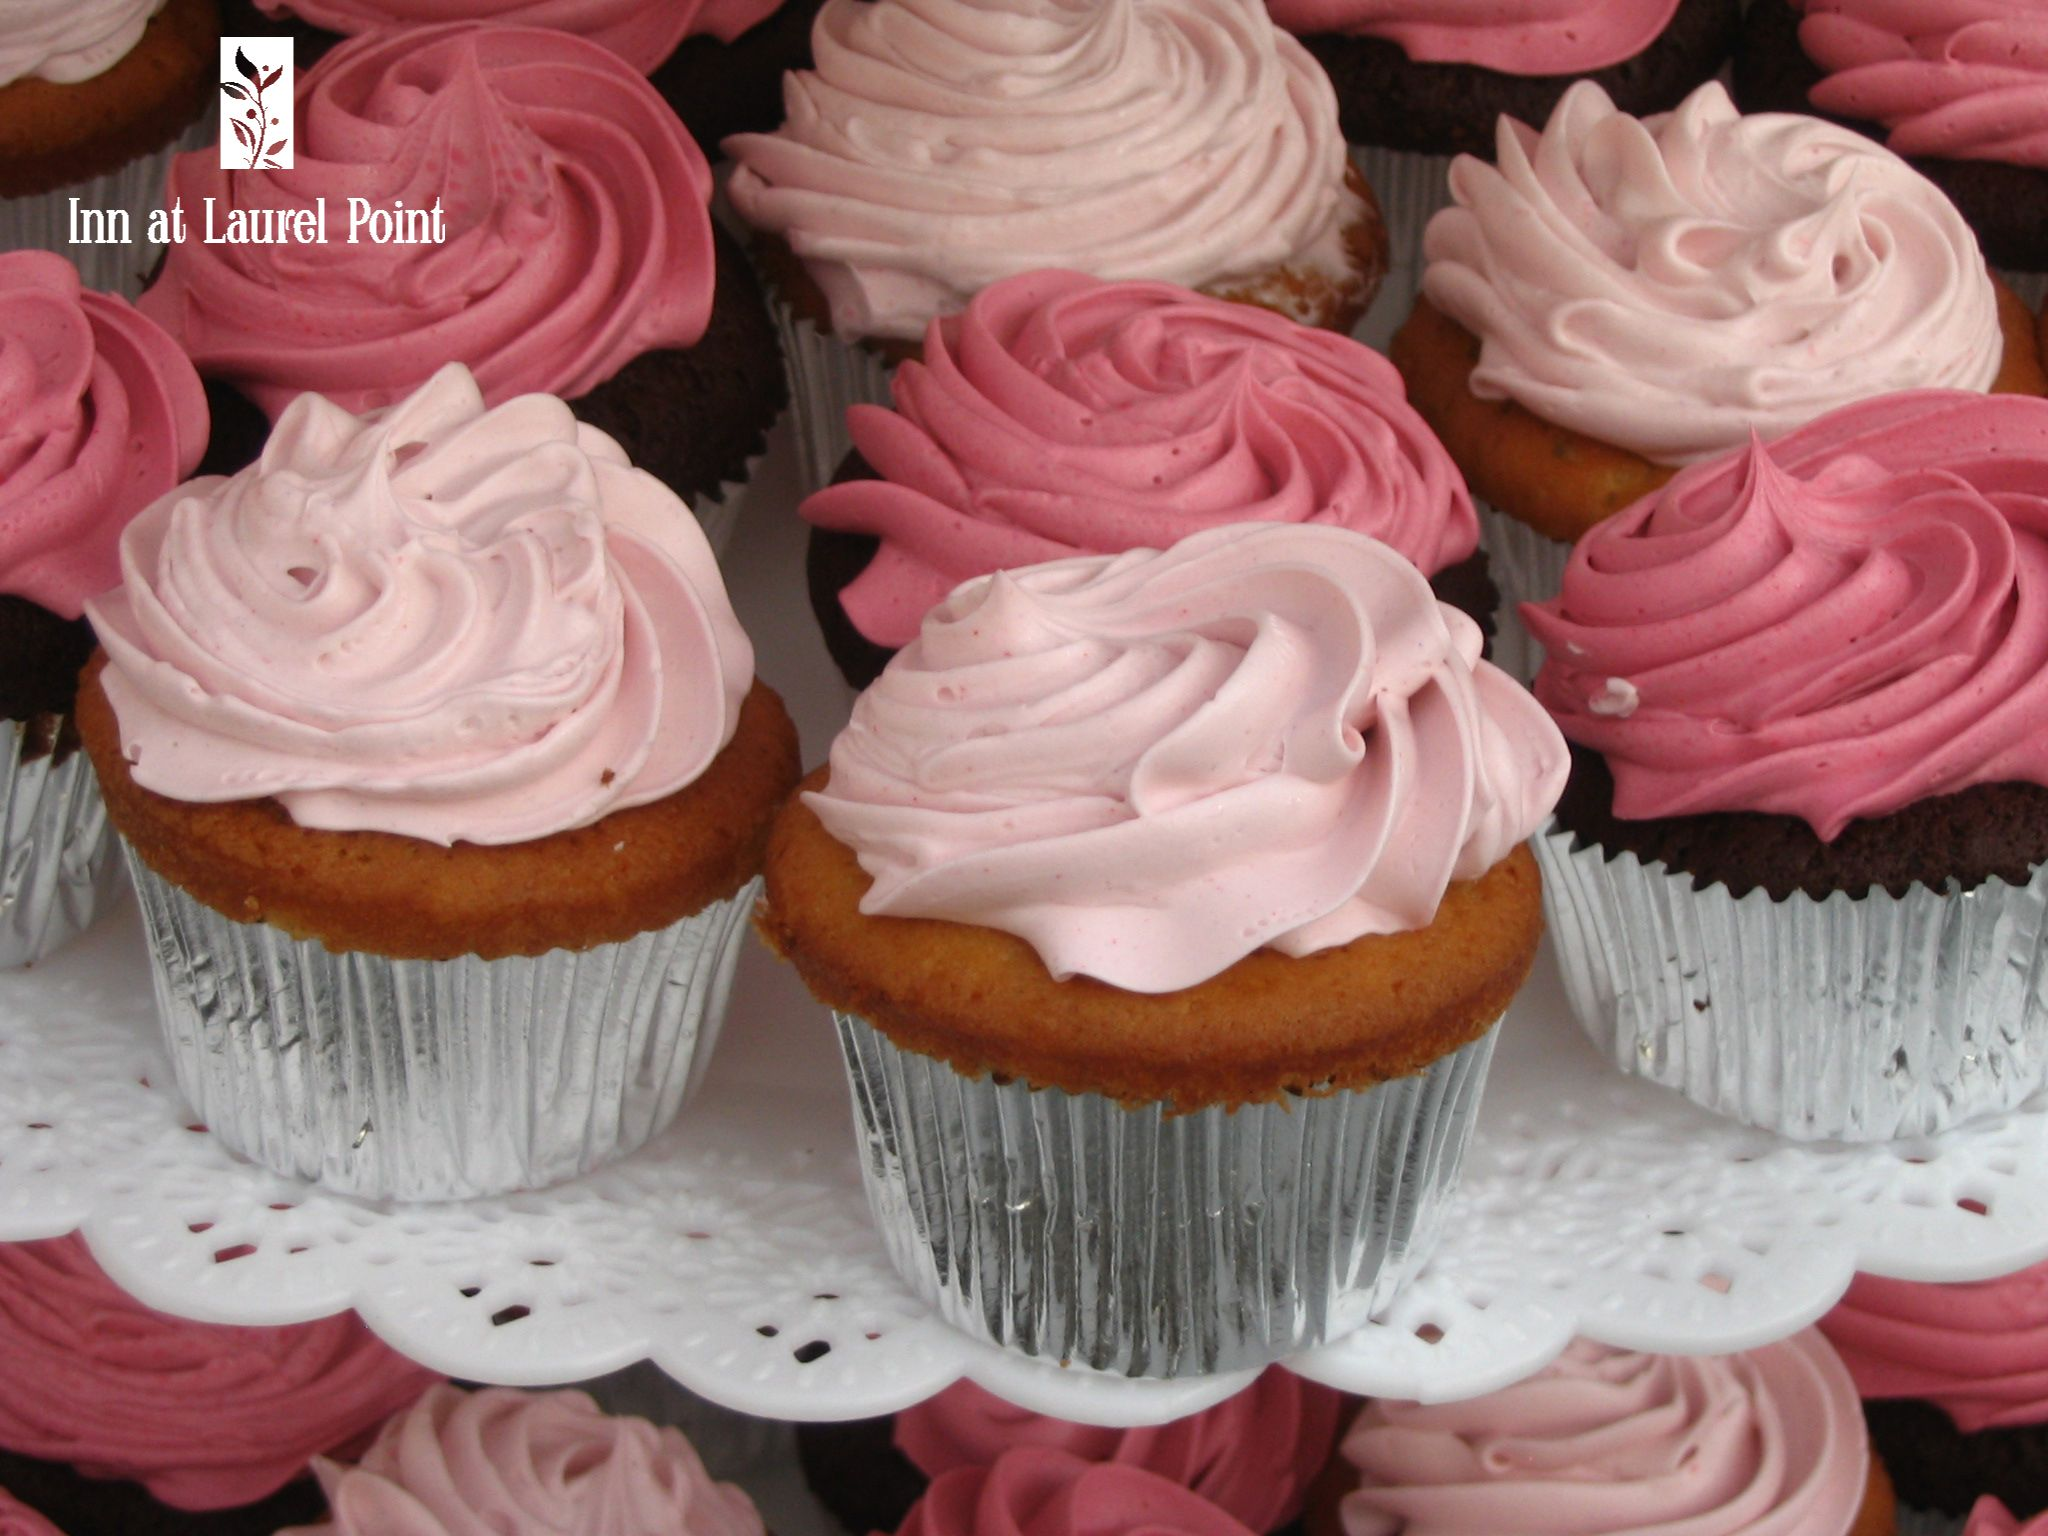 Pink cupcakes | Cakes/Cupcakes/Treats - Vancouver Island | Pinterest ...